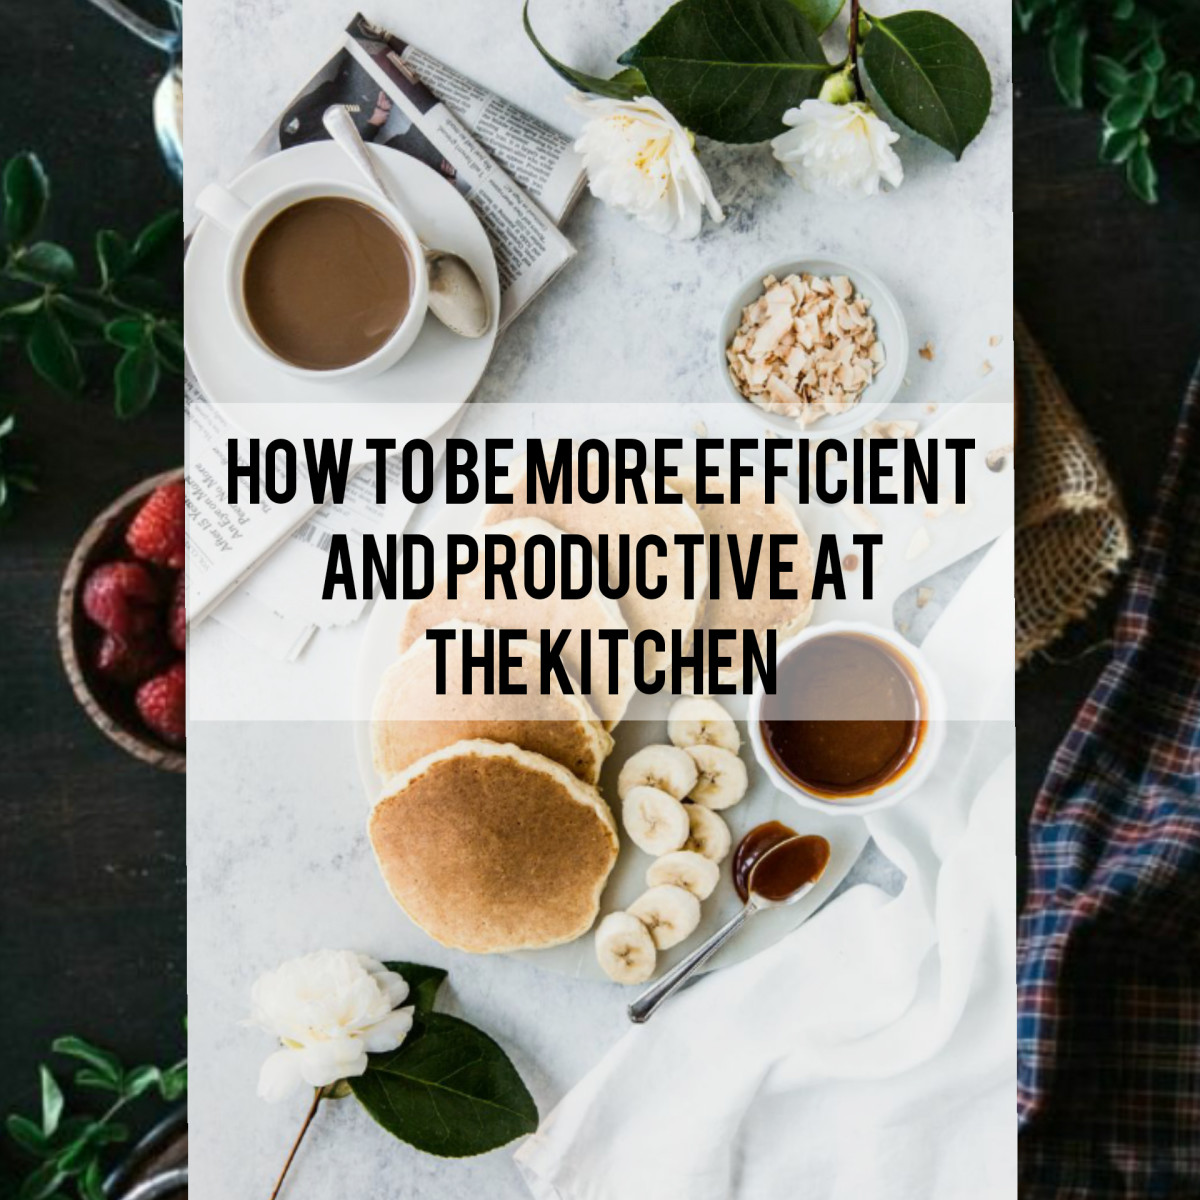 How to Be More Efficient and Productive at The Kitchen